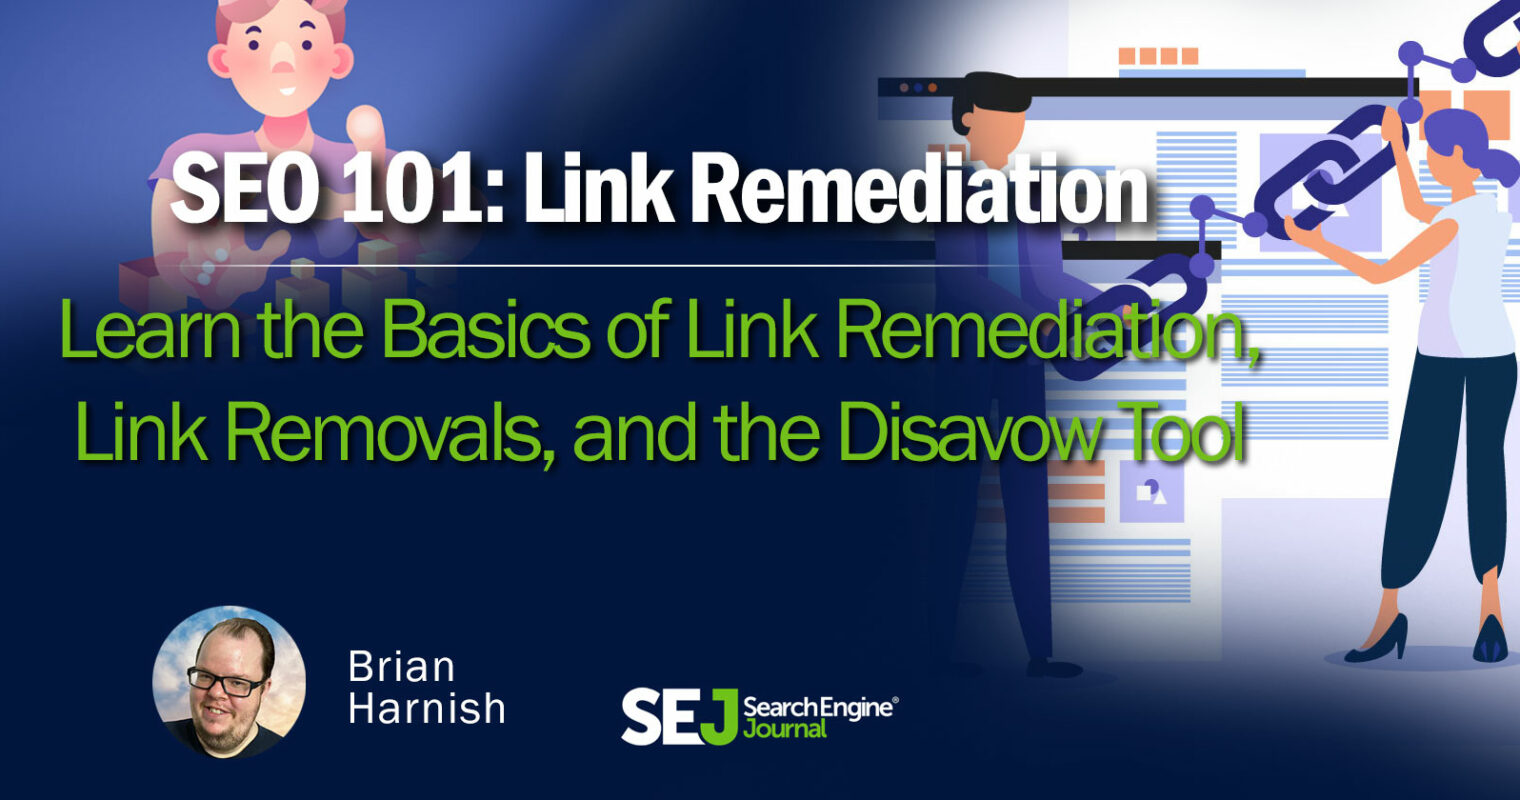 The Basics of Link Remediation, Link Removals & Disavows